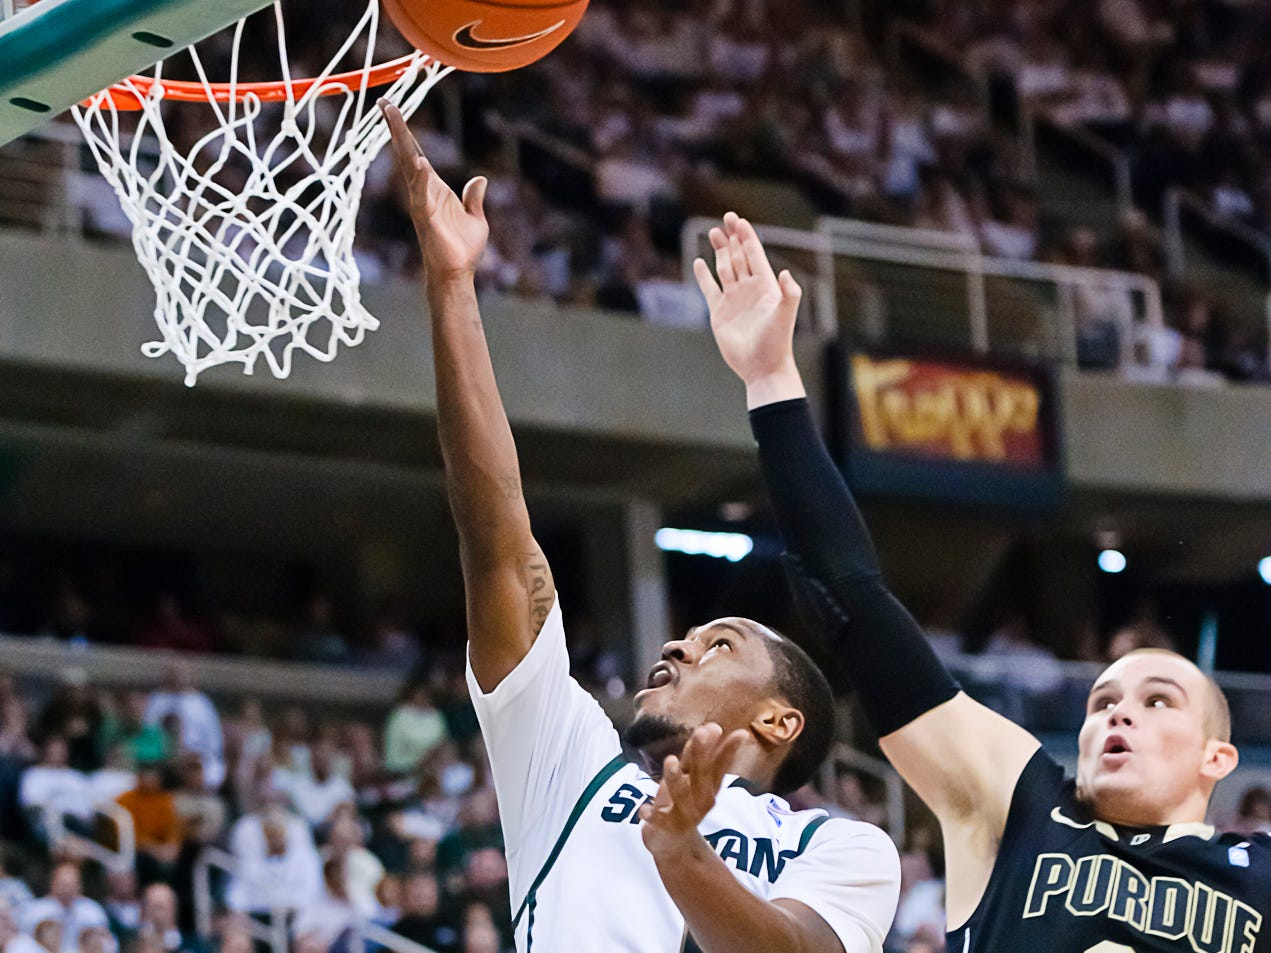 Kalin Lucas (left) of MSU lays the ball in while being defended by D.J. Byrd of Purdue during their game Sunday February 27, 2011 in East Lansing.  Lucas was the only bright spot for MSU in the game as he contributed a game-high 23 points.